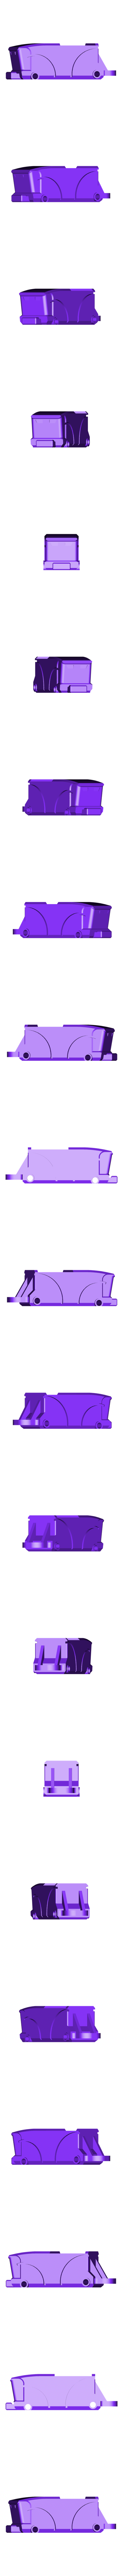 BodyV1.STL Download free STL file John Deere Tractor and Trailer • 3D printing object, Supeso